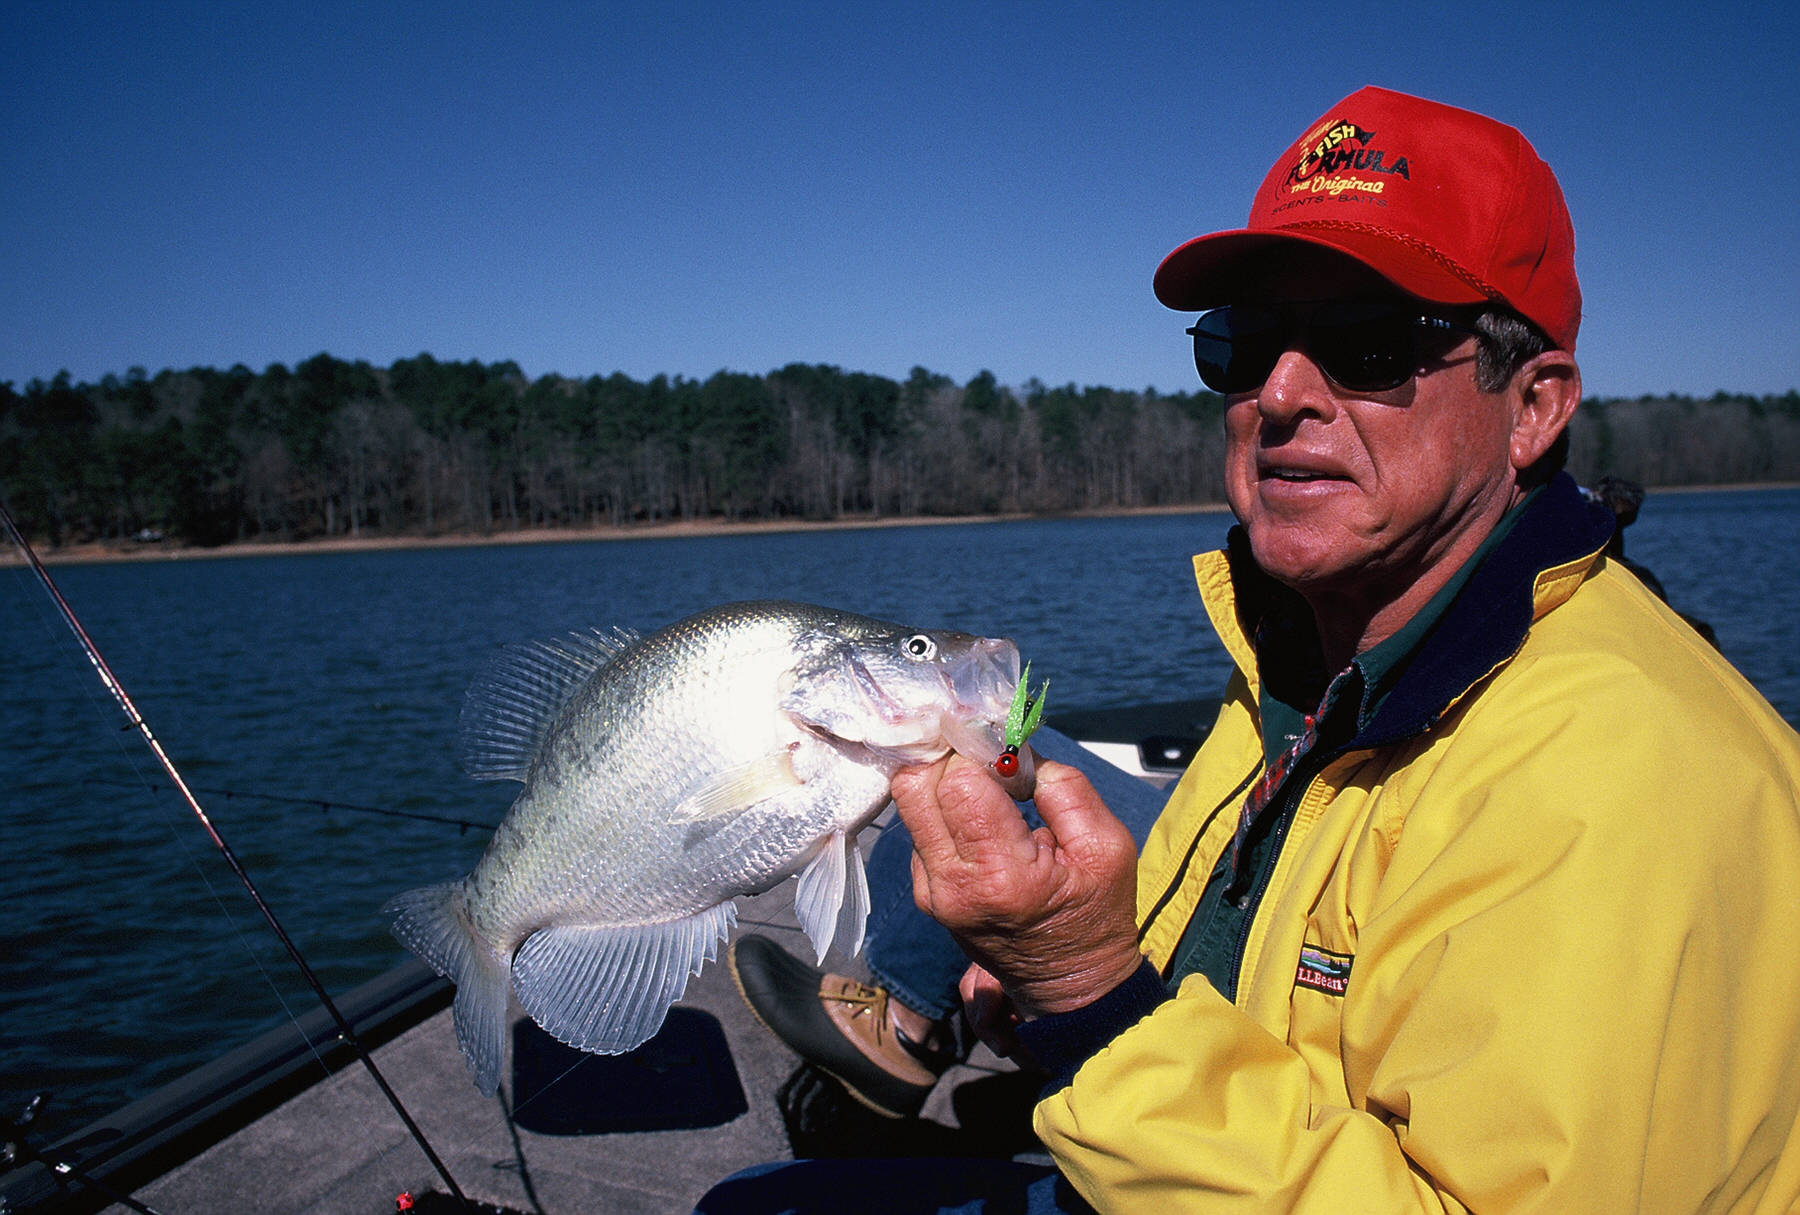 Roger Gant on Catching Pre-Spawn Crappies